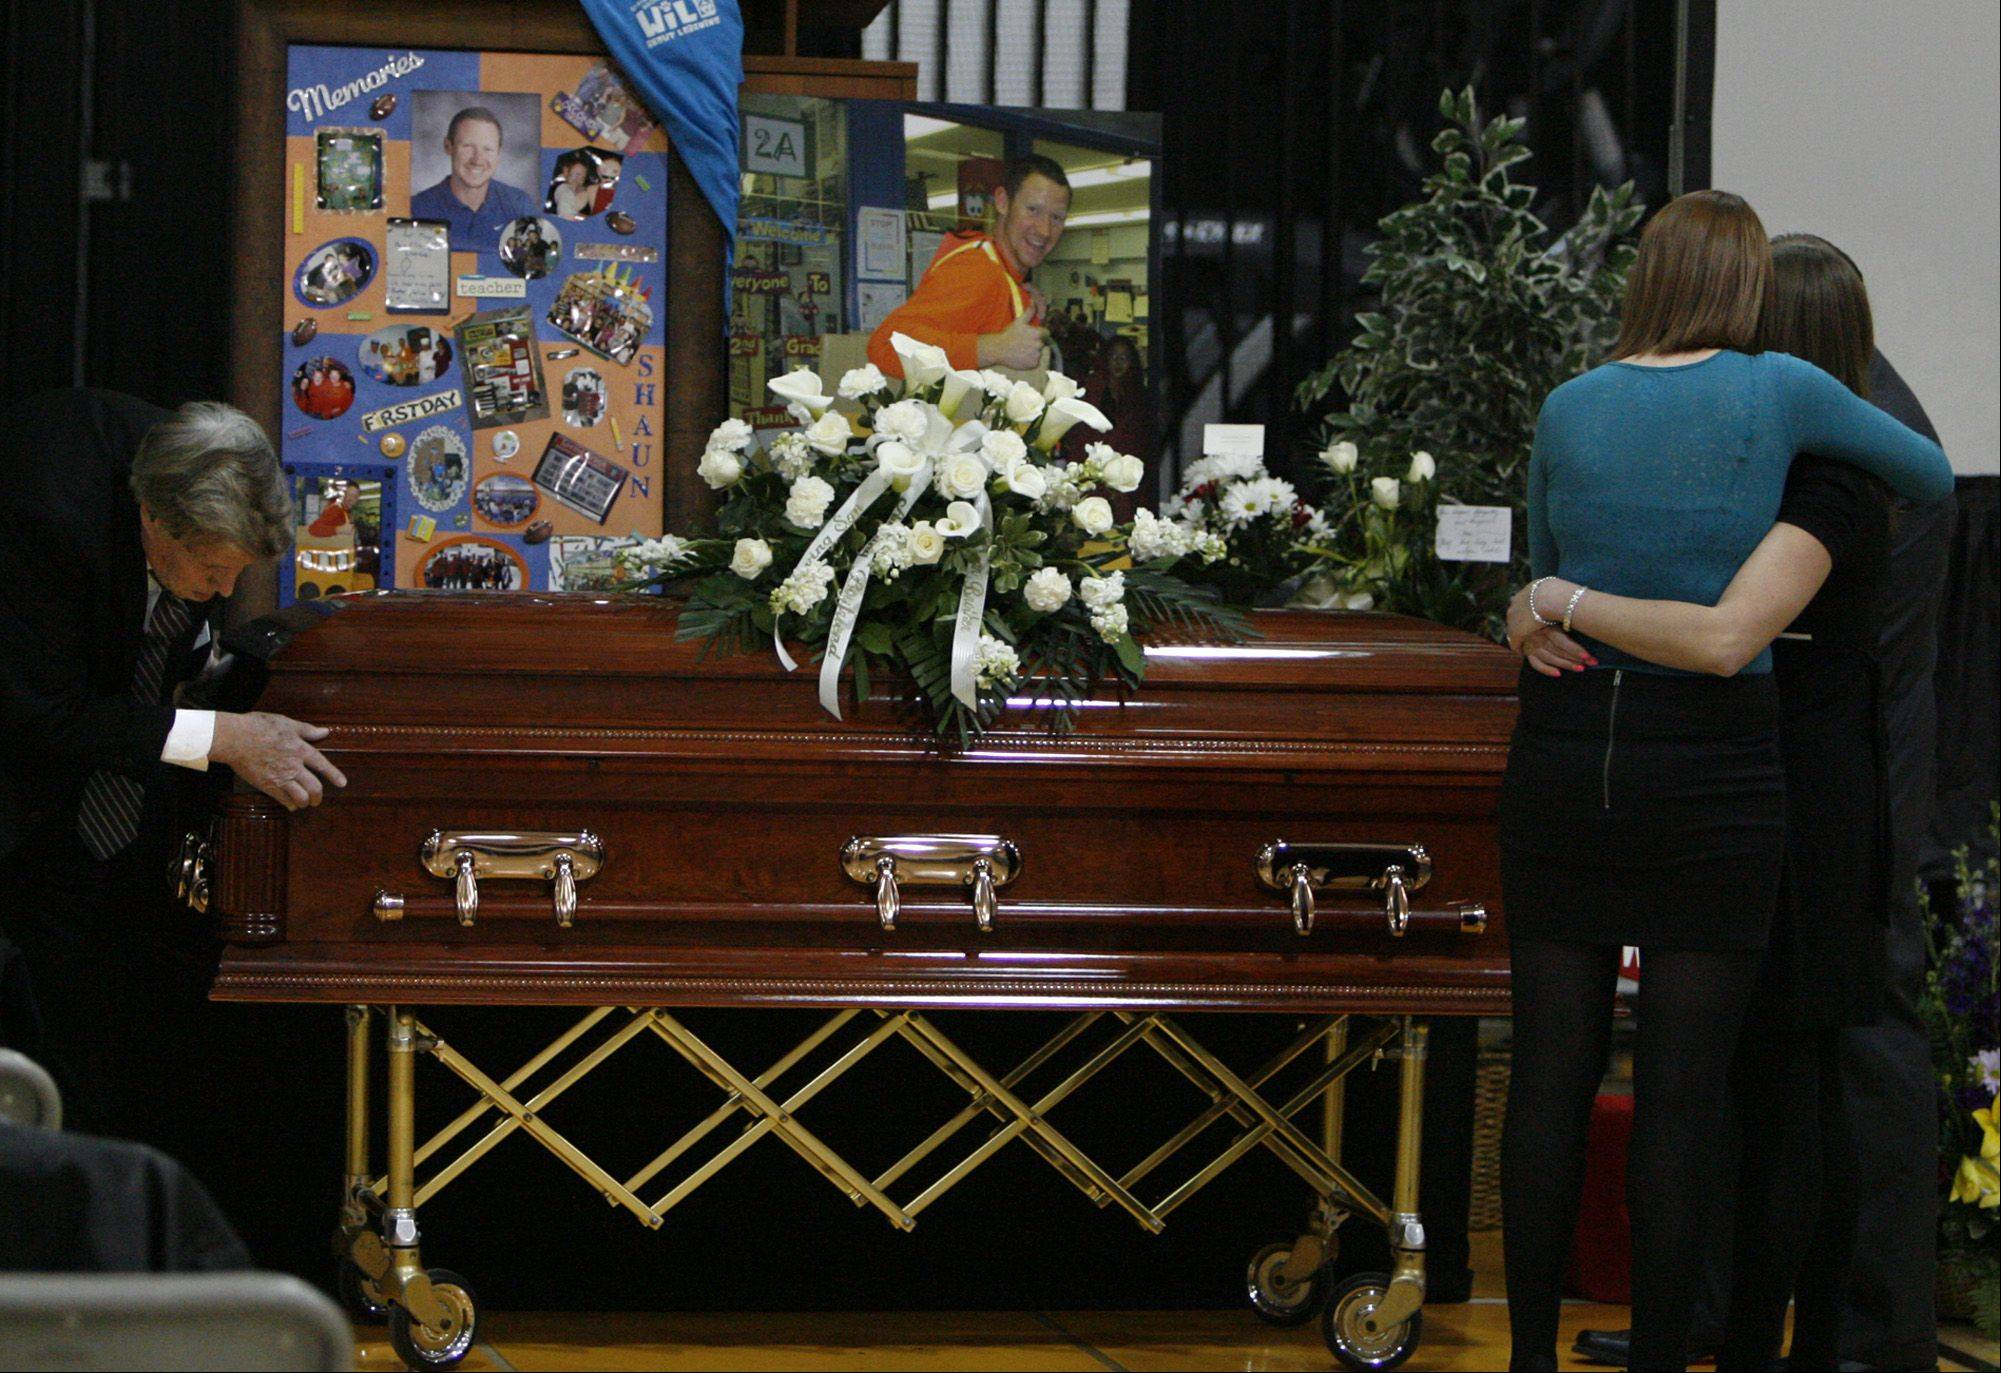 Shannon Wild, left, receives a hug as she views the casket and photographs of her brother Shaun Wild during the visitation for the slain Naperville teacher.